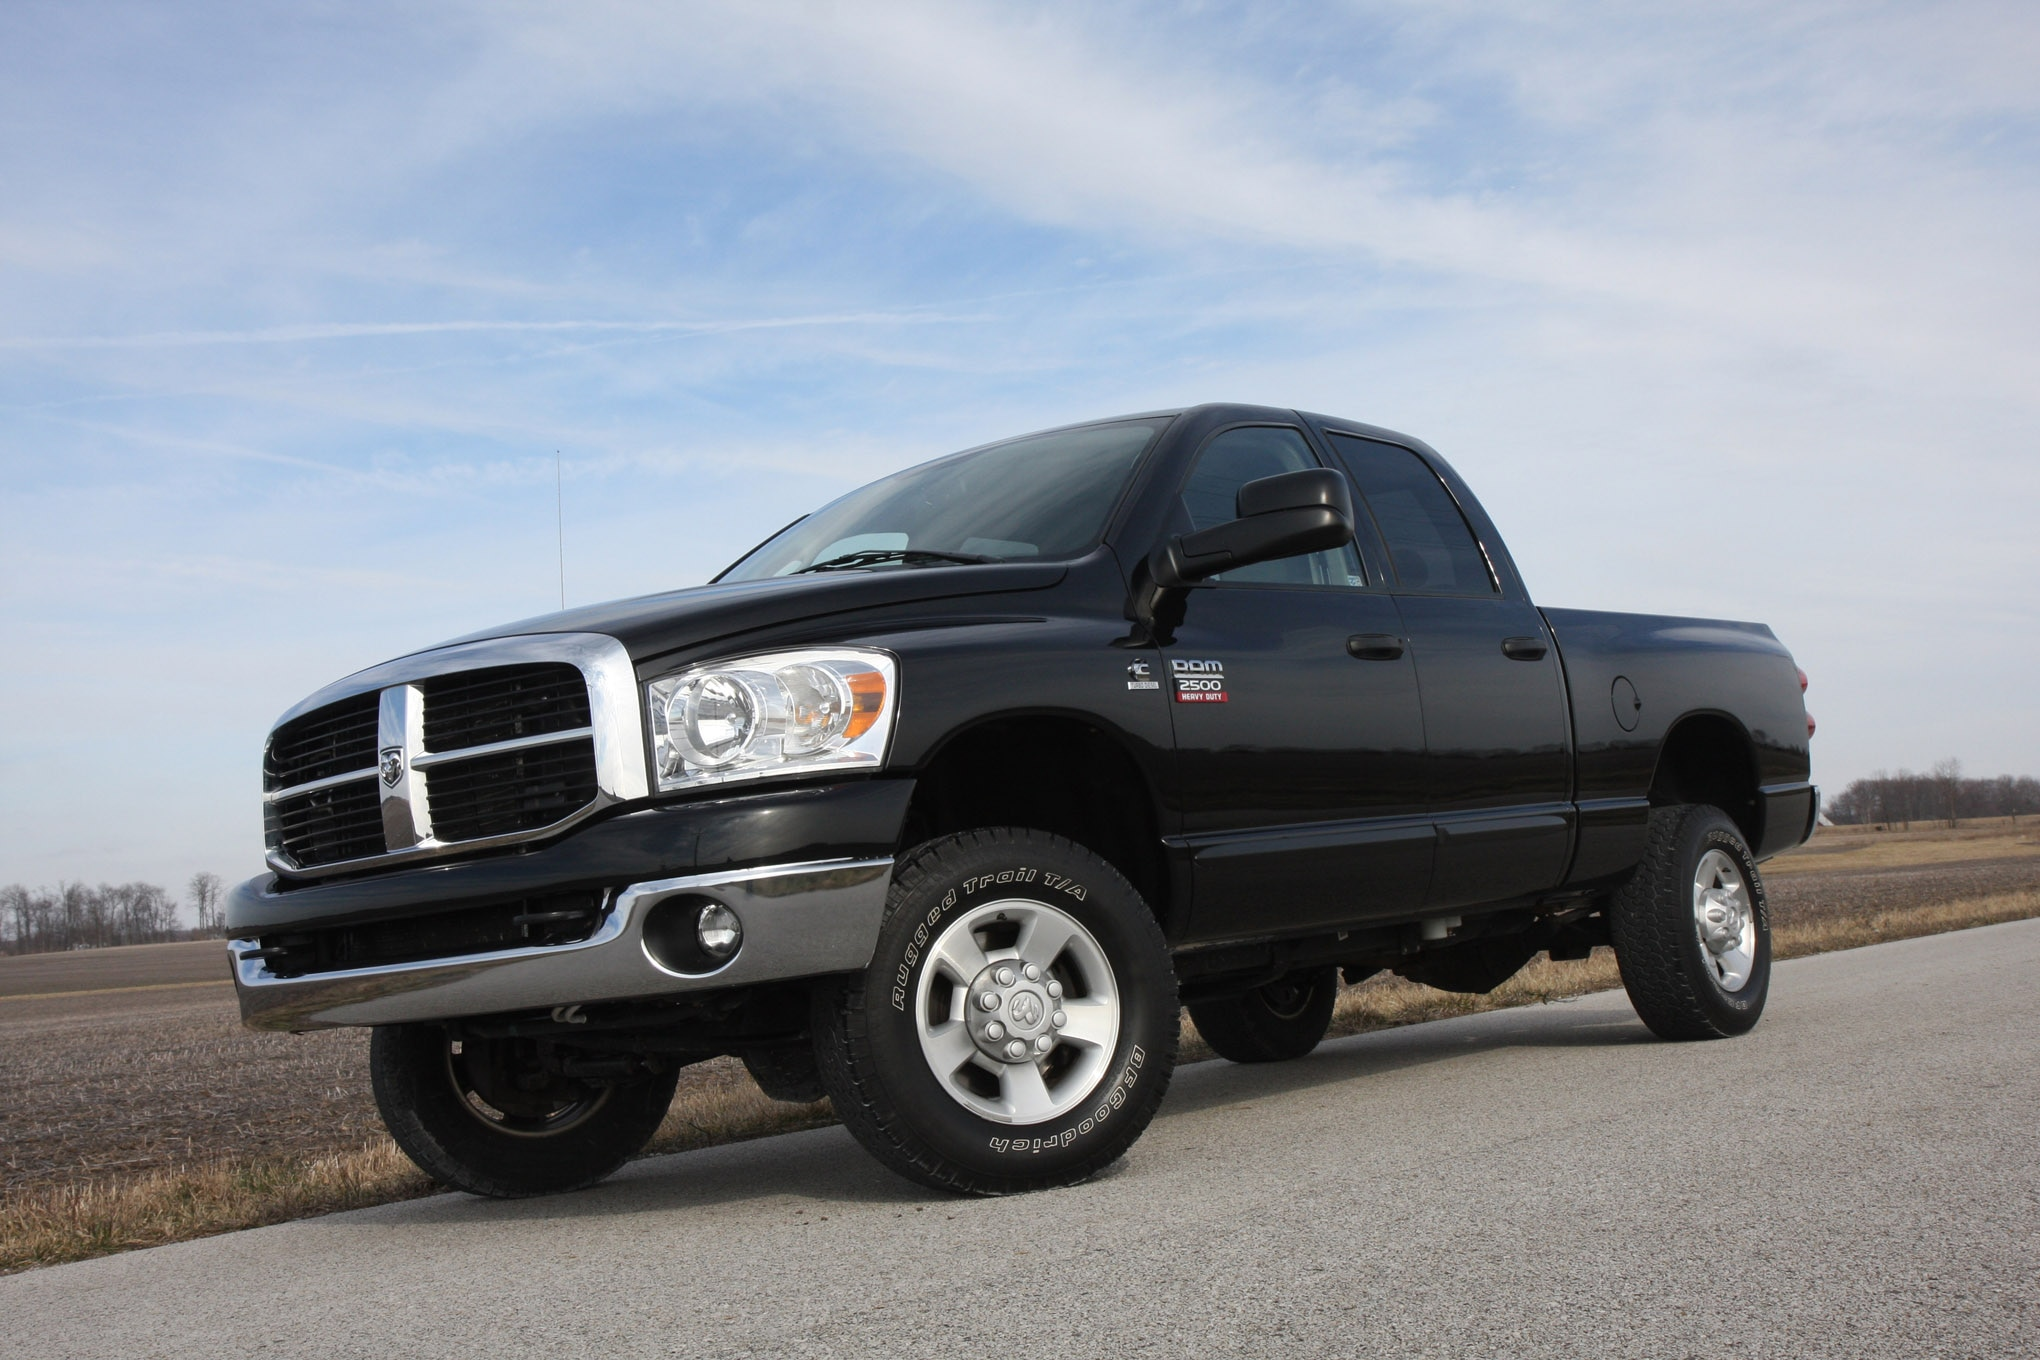 Best 3 4 Ton Truck >> Big Three On A Budget What S The Best Pre Owned 3 4 Ton 4x4